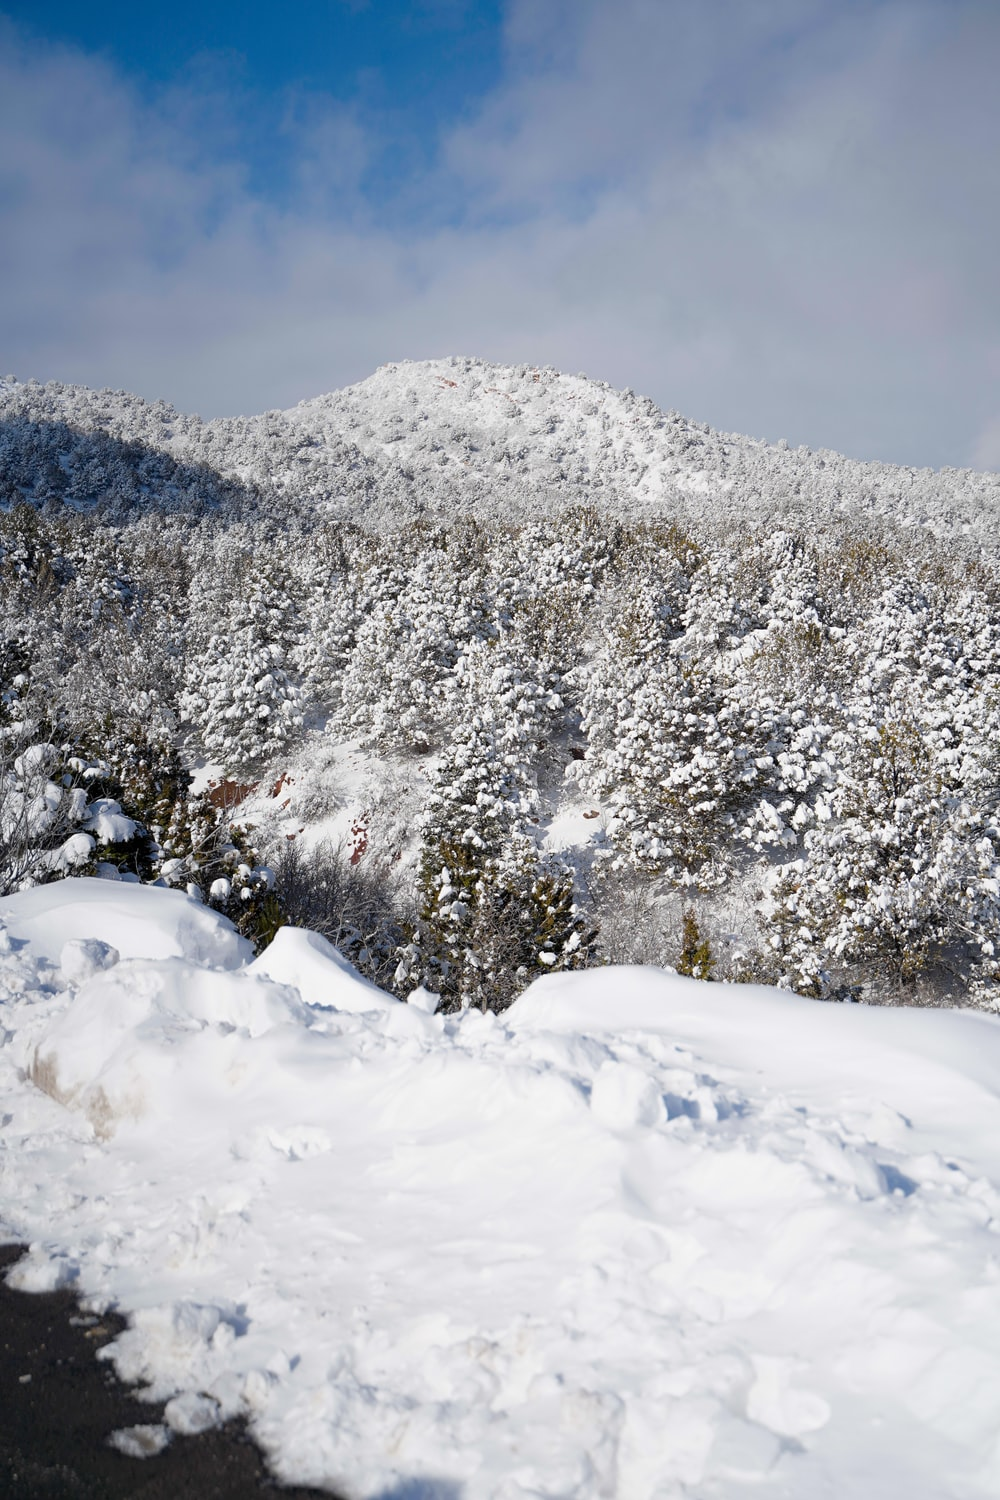 snow covered field and trees at daytime